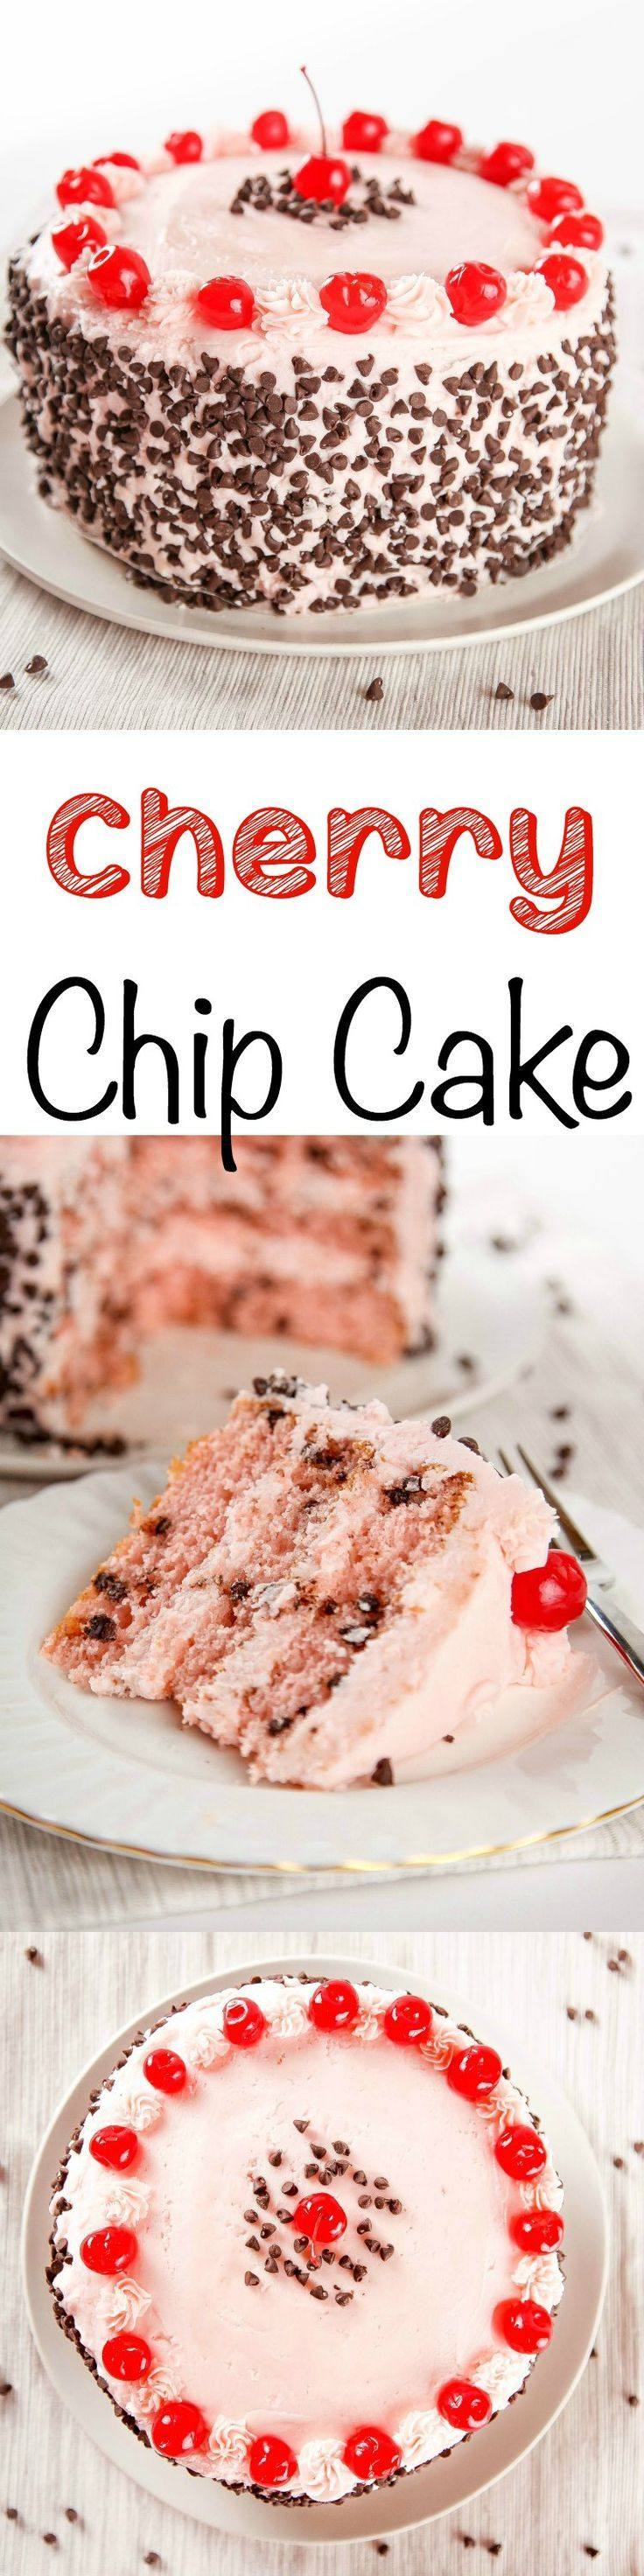 Cherry Chocolate Chip Cake: Super moist cherry cake studded with tons of mini chocolate chips. Tastes like a chocolate covered cherry in cake form!